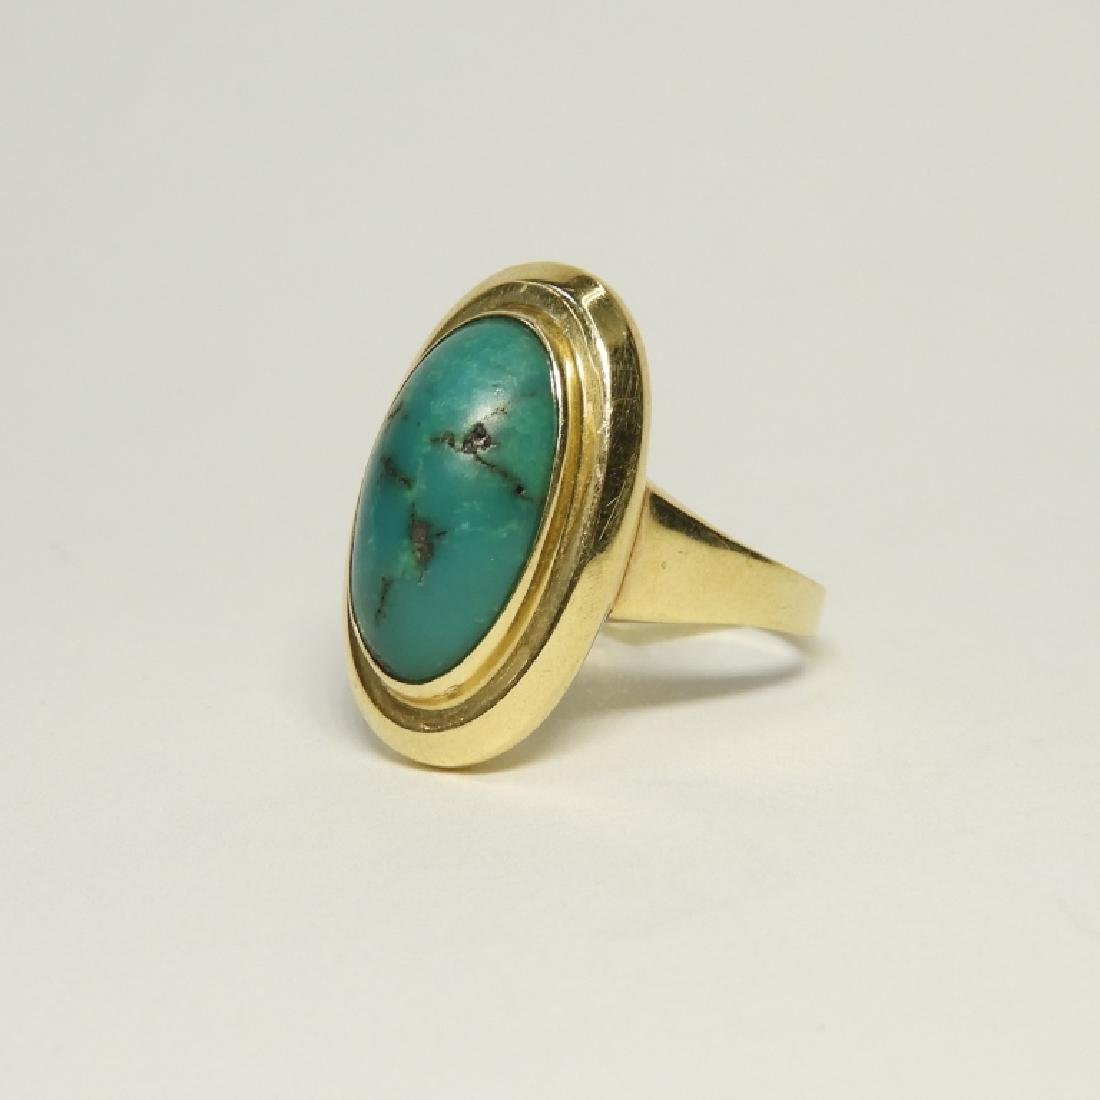 14K Yellow Gold & Turquoise Cabochon Stone Ring - 2